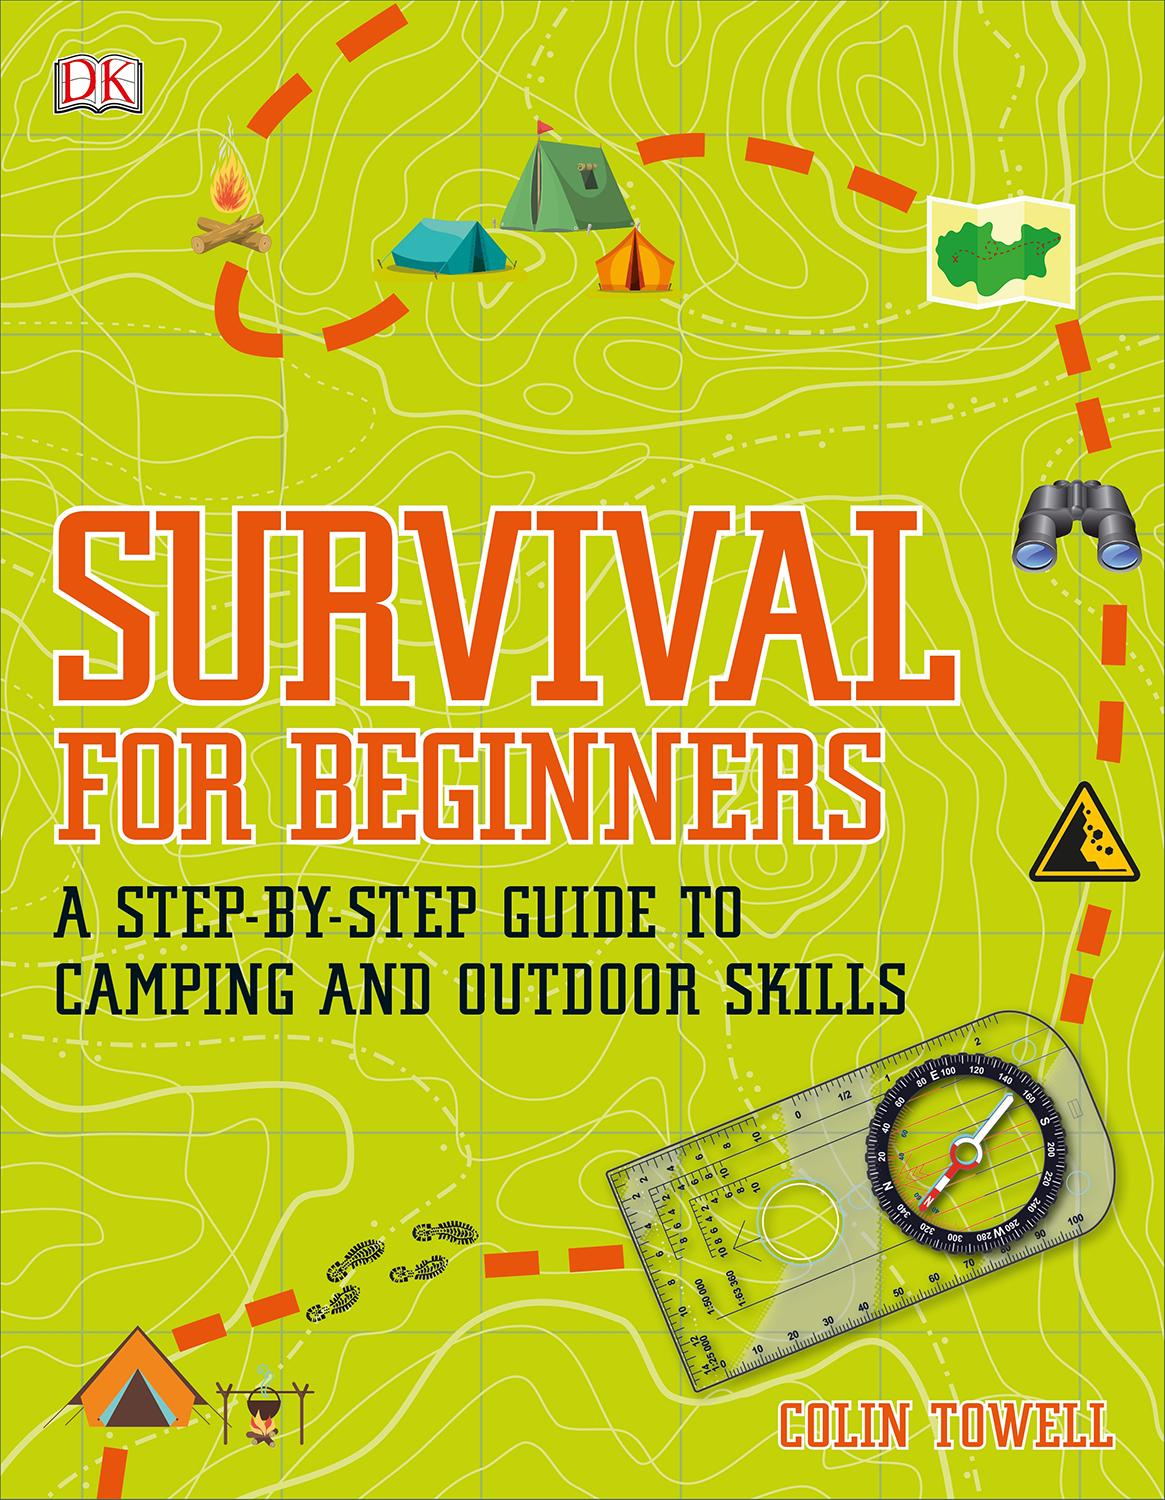 Survival for Beginners: A step-by-step guide to camping and outdoor skills by DK